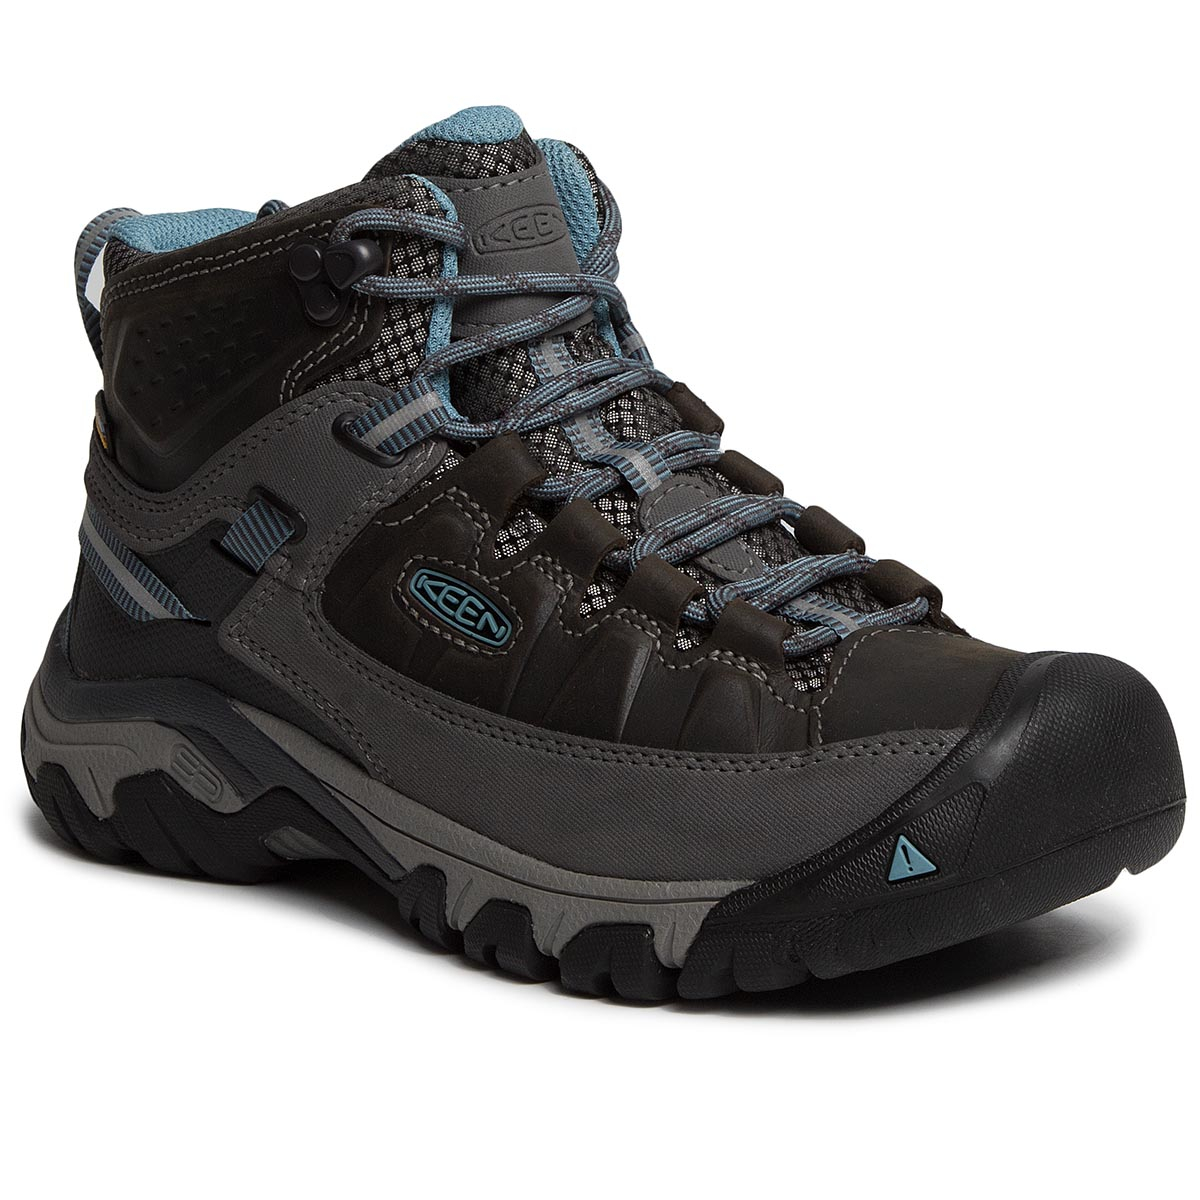 Trekkings Keen - Targhee Iii Mid Wp 1023040 Magnet/Atlantic Blue imagine epantofi.ro 2021